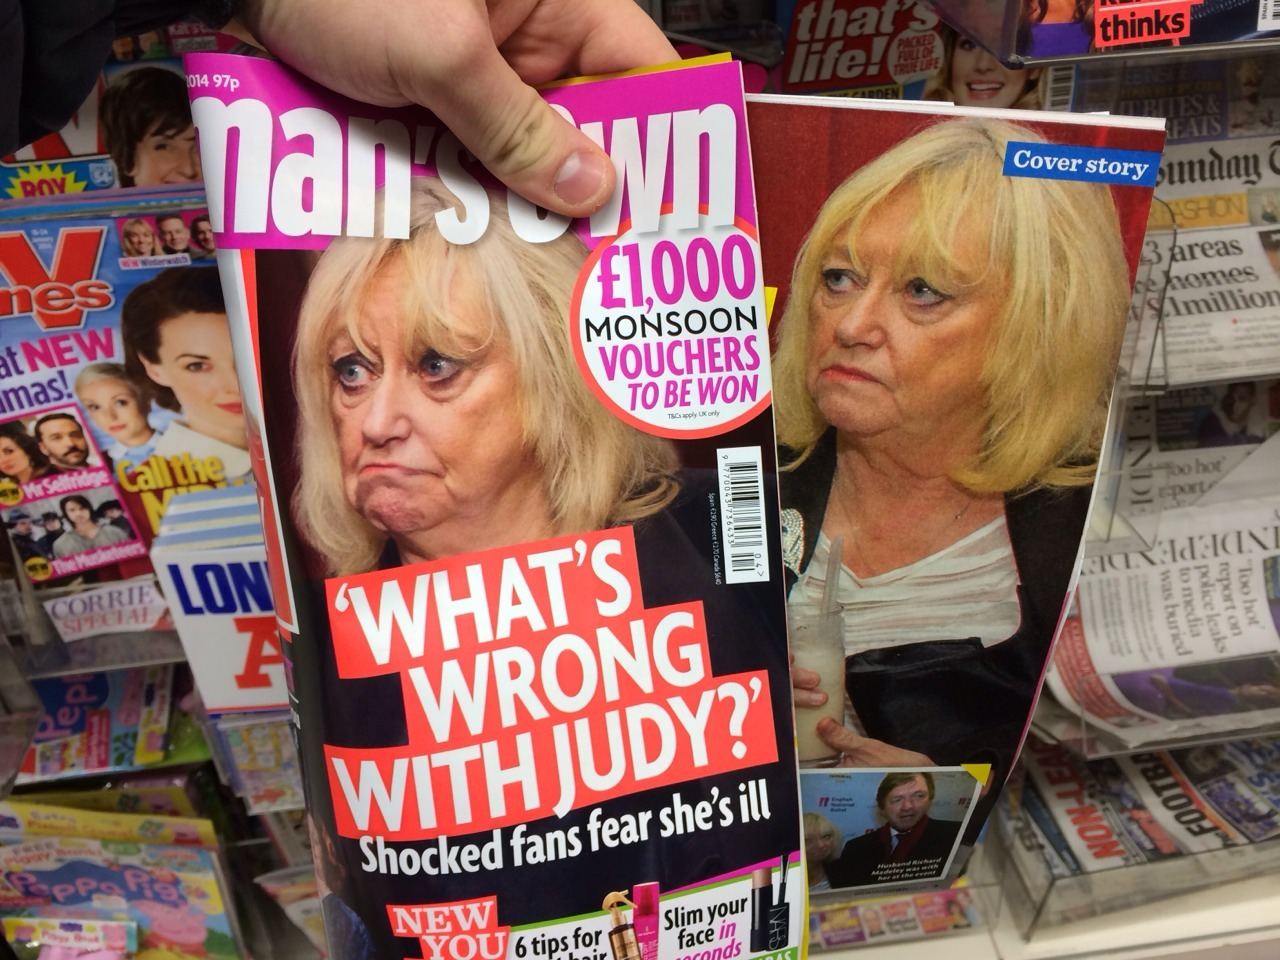 bit unfair to delete her lips, give her a frog's face and stick her on the cover of a magazine… and then ask 'what's wrong?'